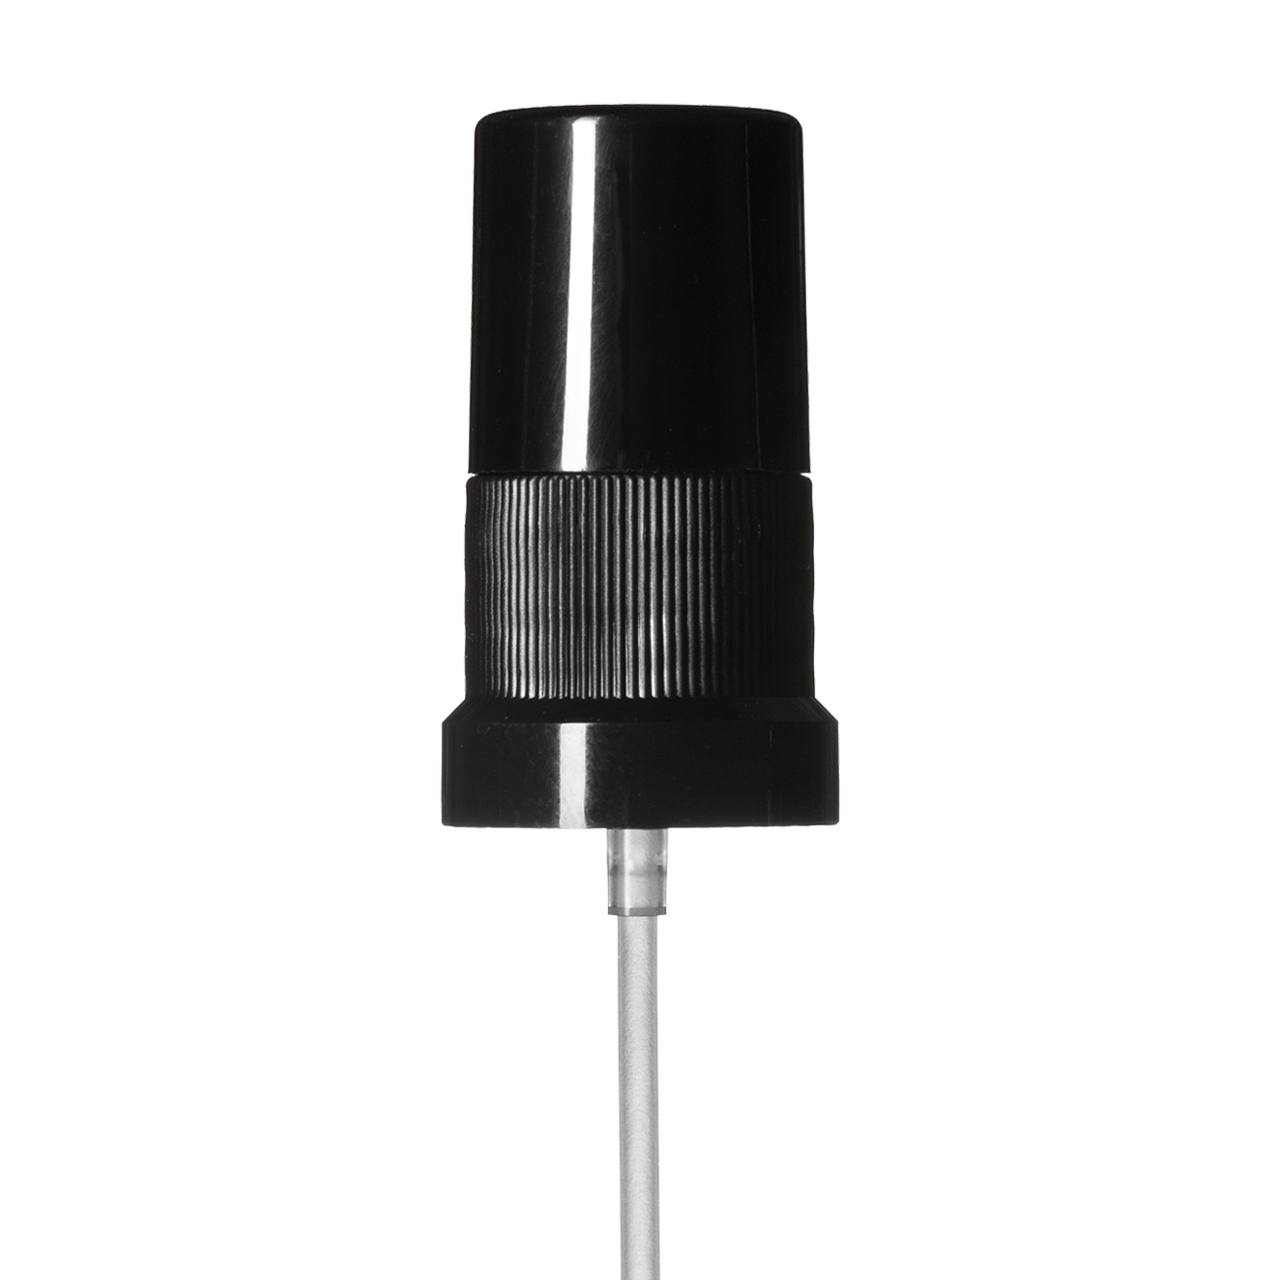 Mist sprayer Sinfonia DIN18, PP, black, ribbed, dose 0.10 ml, with black overcap (for Orion 5-100 ml)